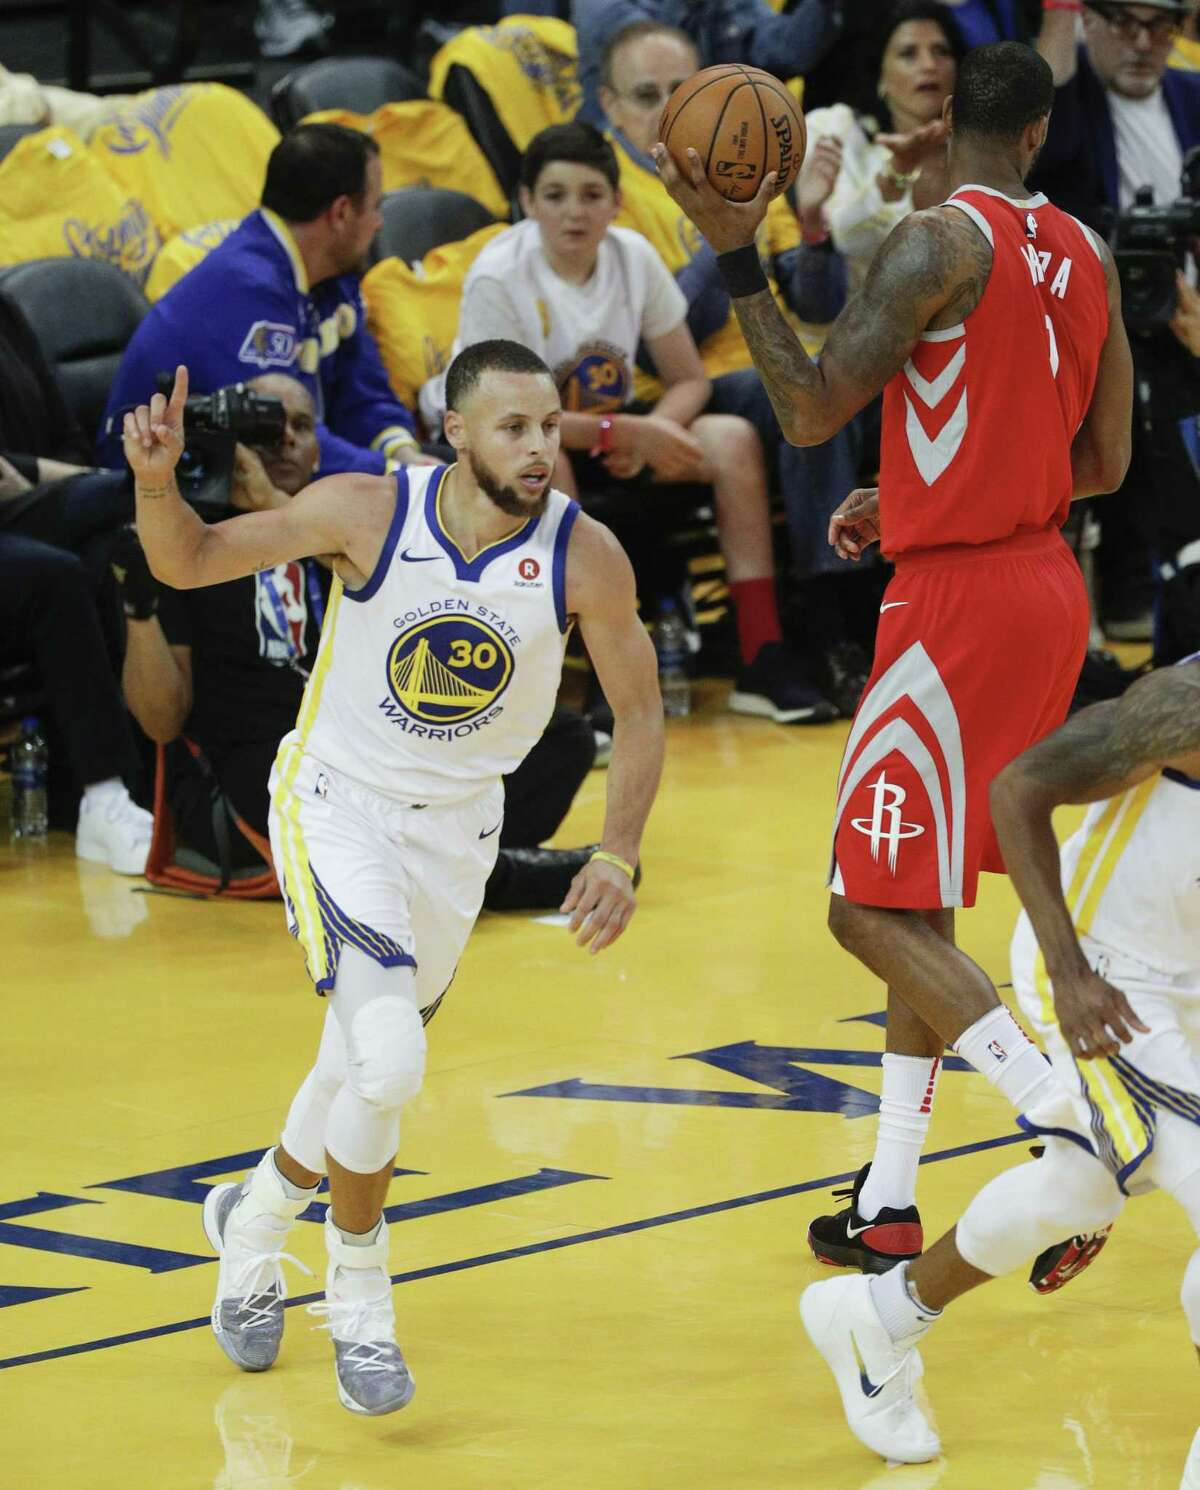 Golden State Warriors' Stephen Curry reacts in the second quarter during game 3 of the Western Conference Finals between the Golden State Warriors and the Houston Rockets at Oracle Arena on Sunday, May 20, 2018 in Oakland, Calif.